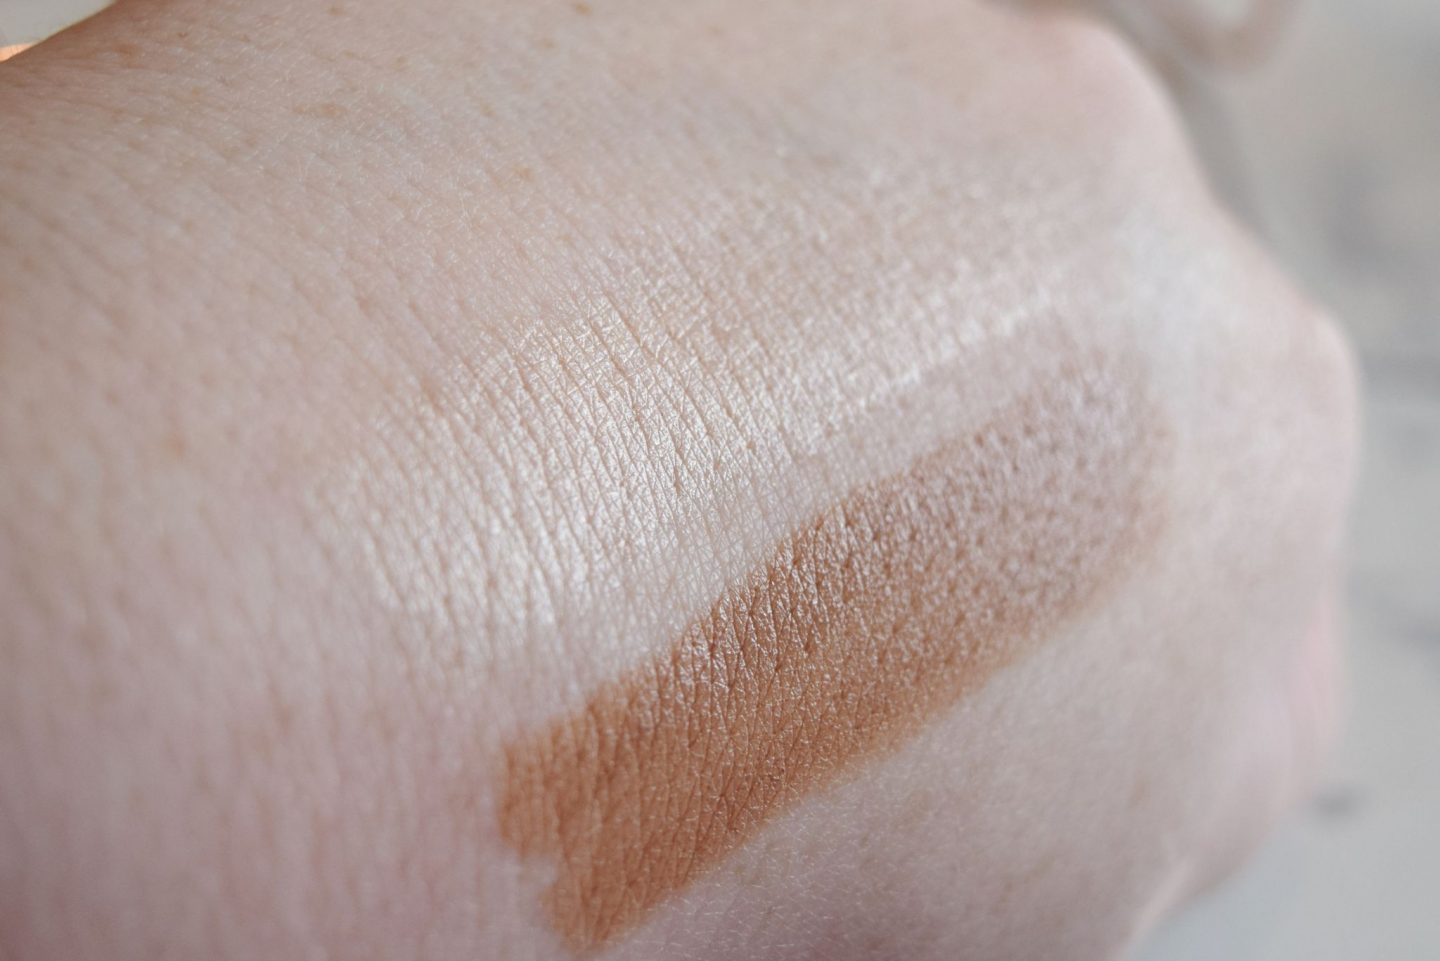 rimmel light insta contour stick swatched